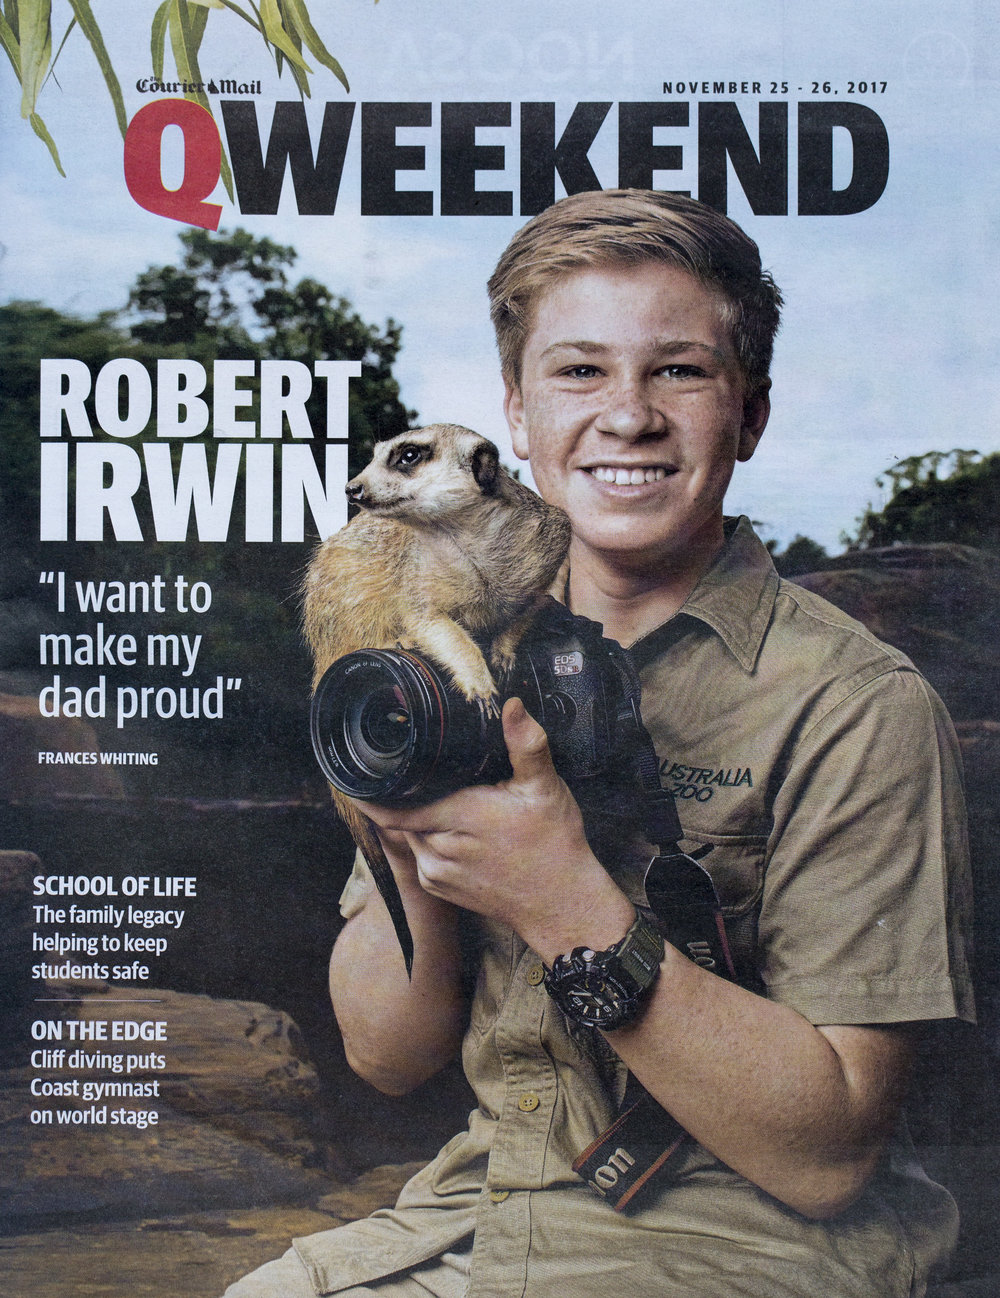 Robert Irwin for Q Weekend Magazine